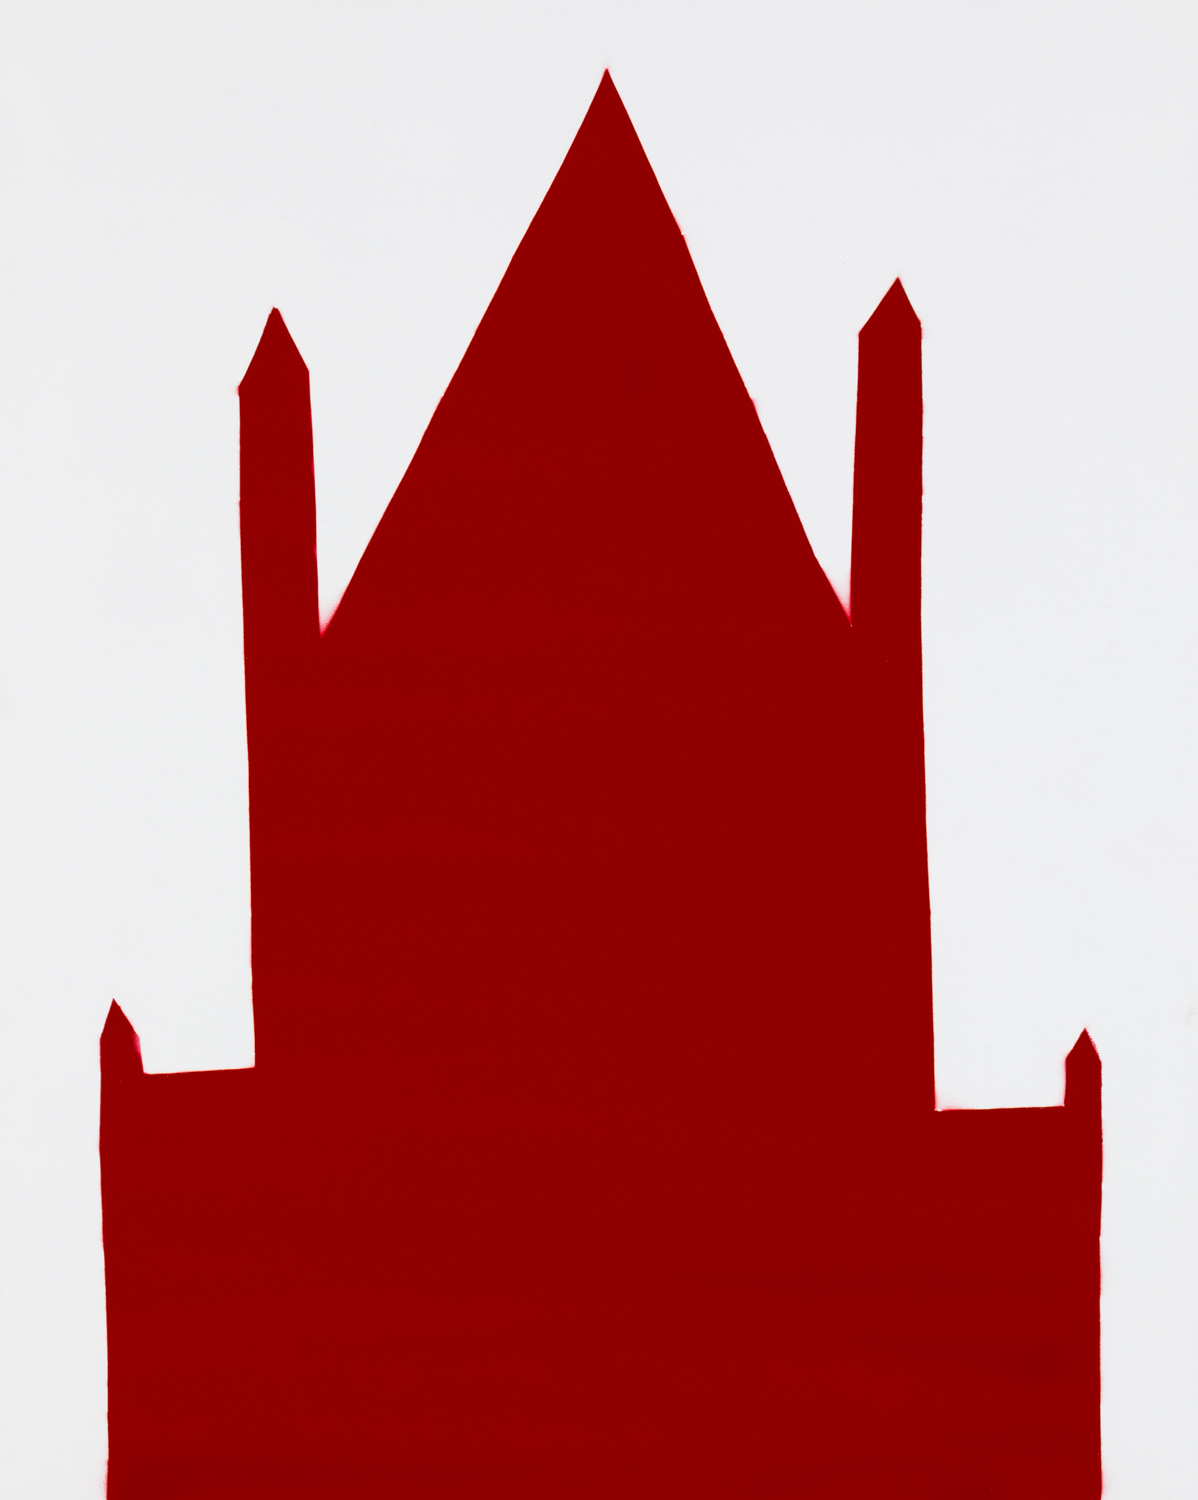 RED 59 , 2018 spray paint on panel 30 x 24 inches